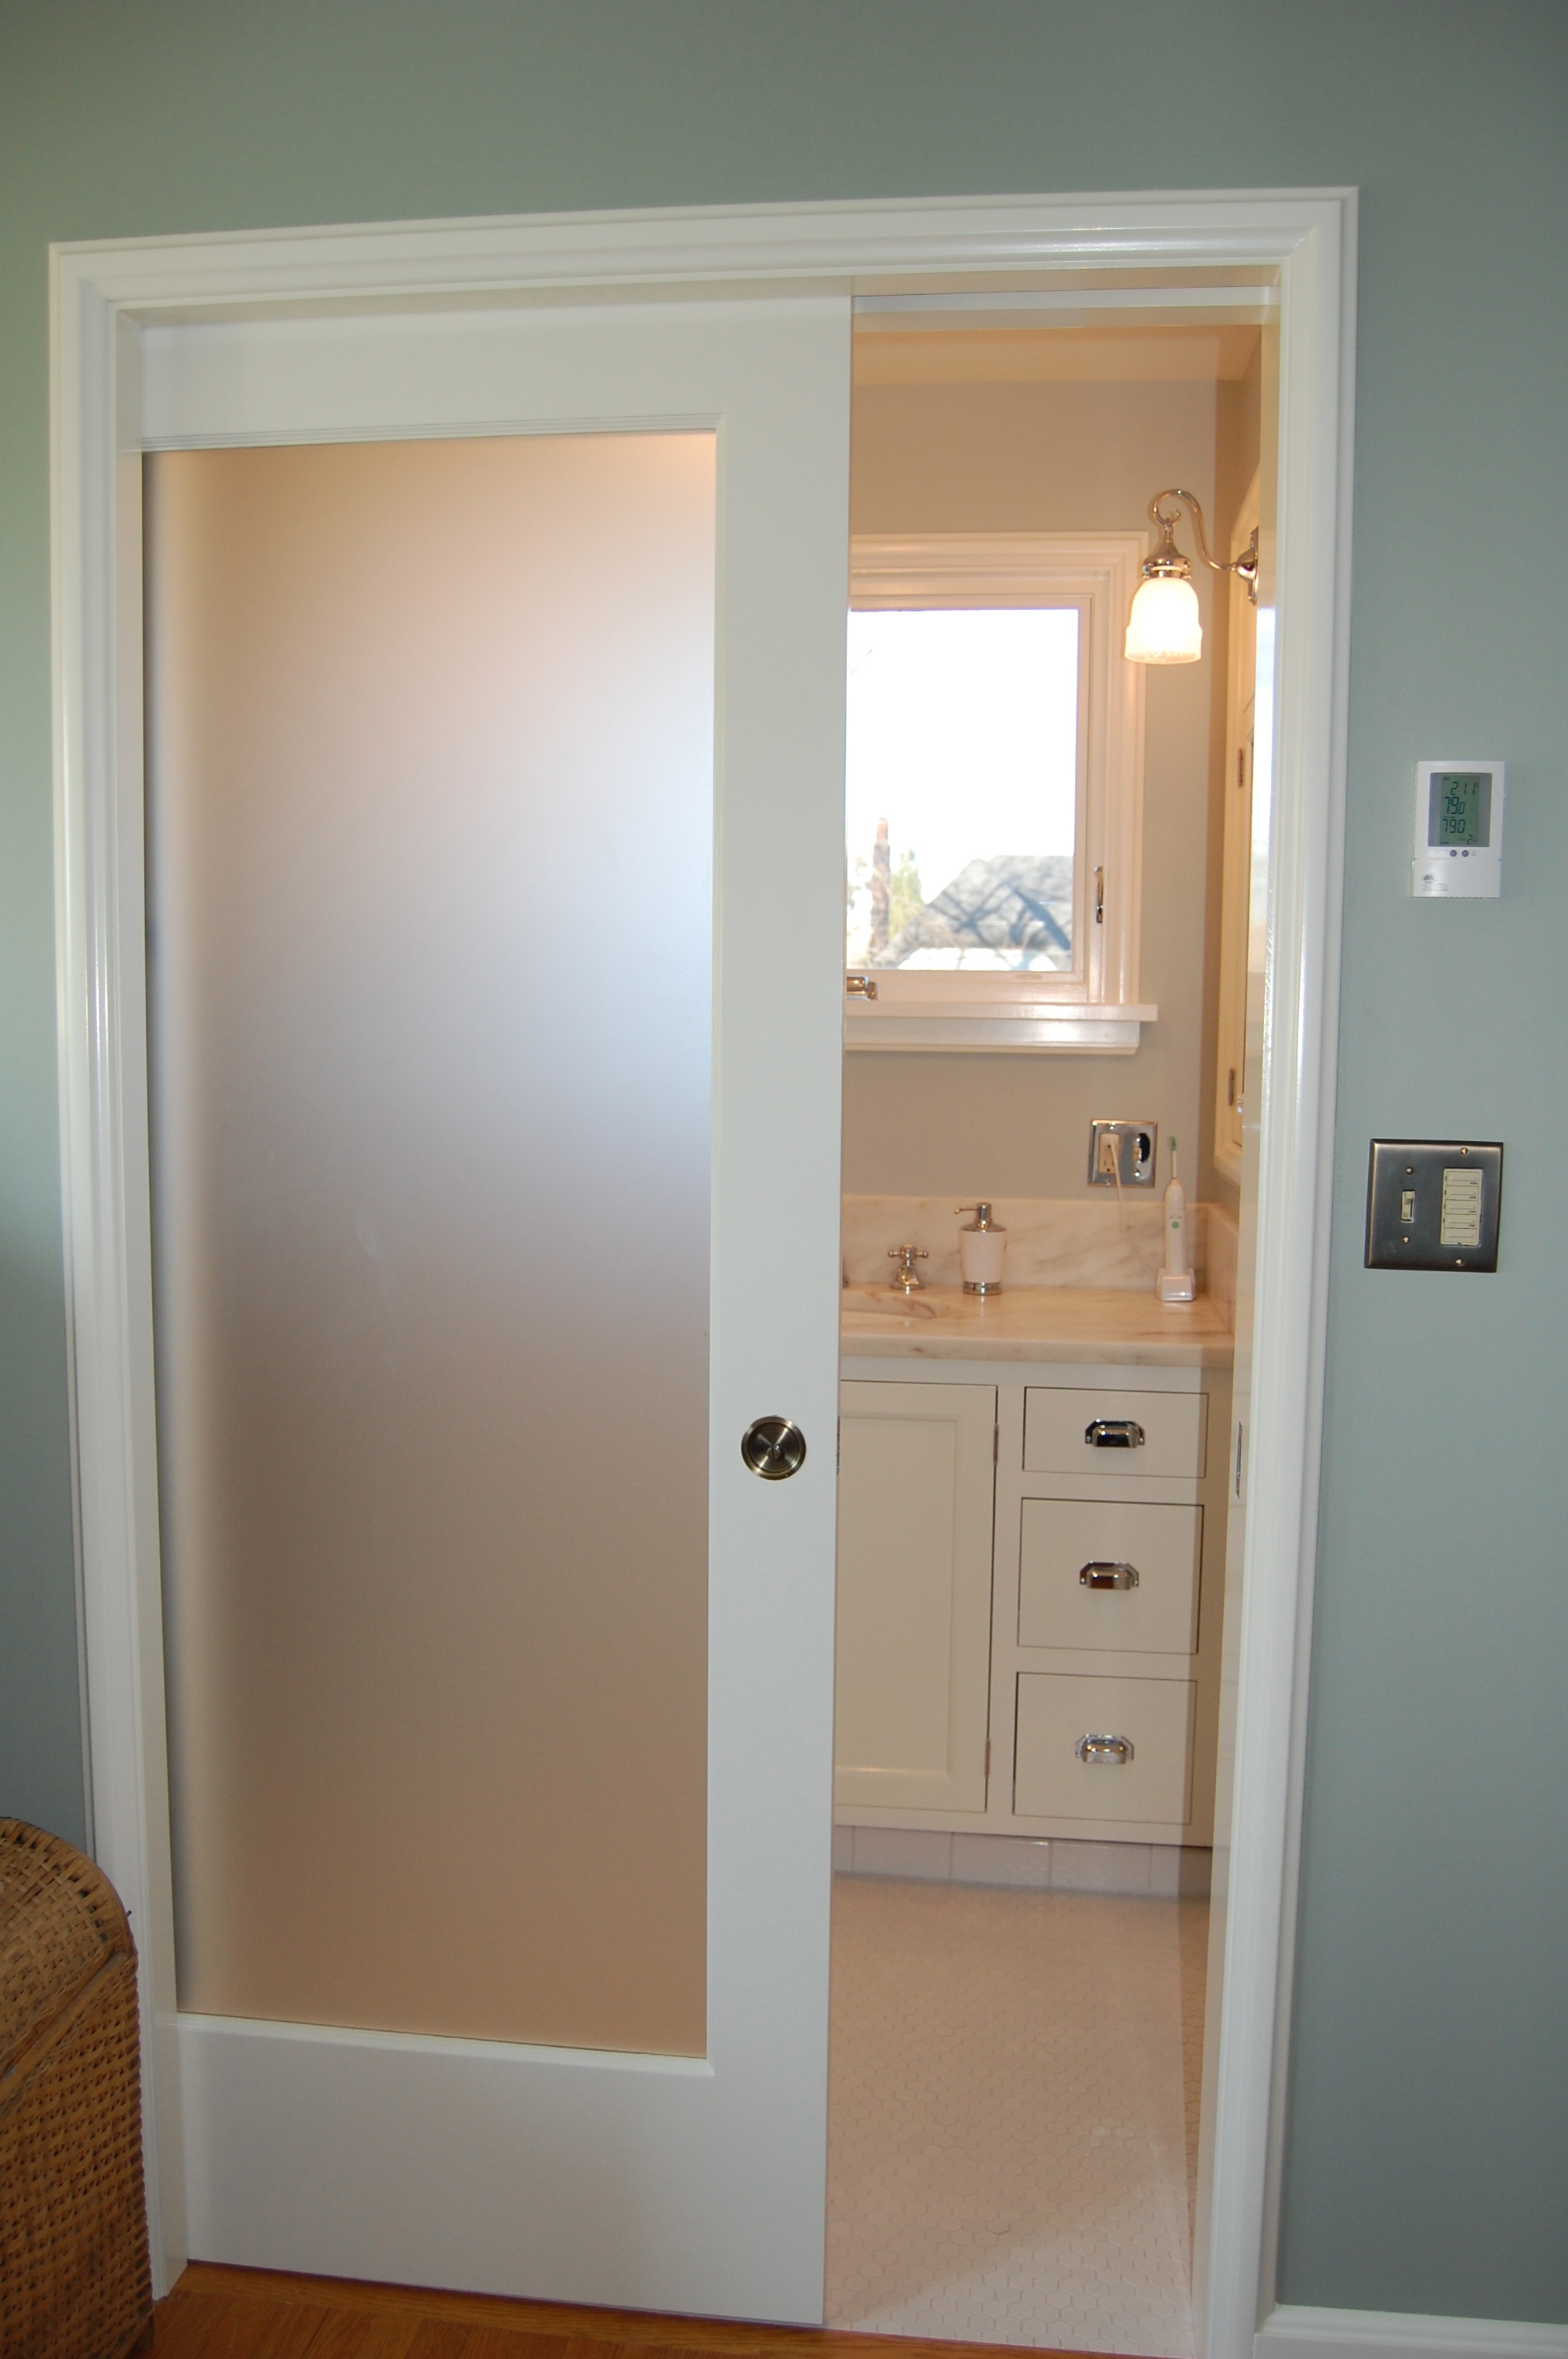 Permalink to Interior Bathroom Doors With Frosted Glass